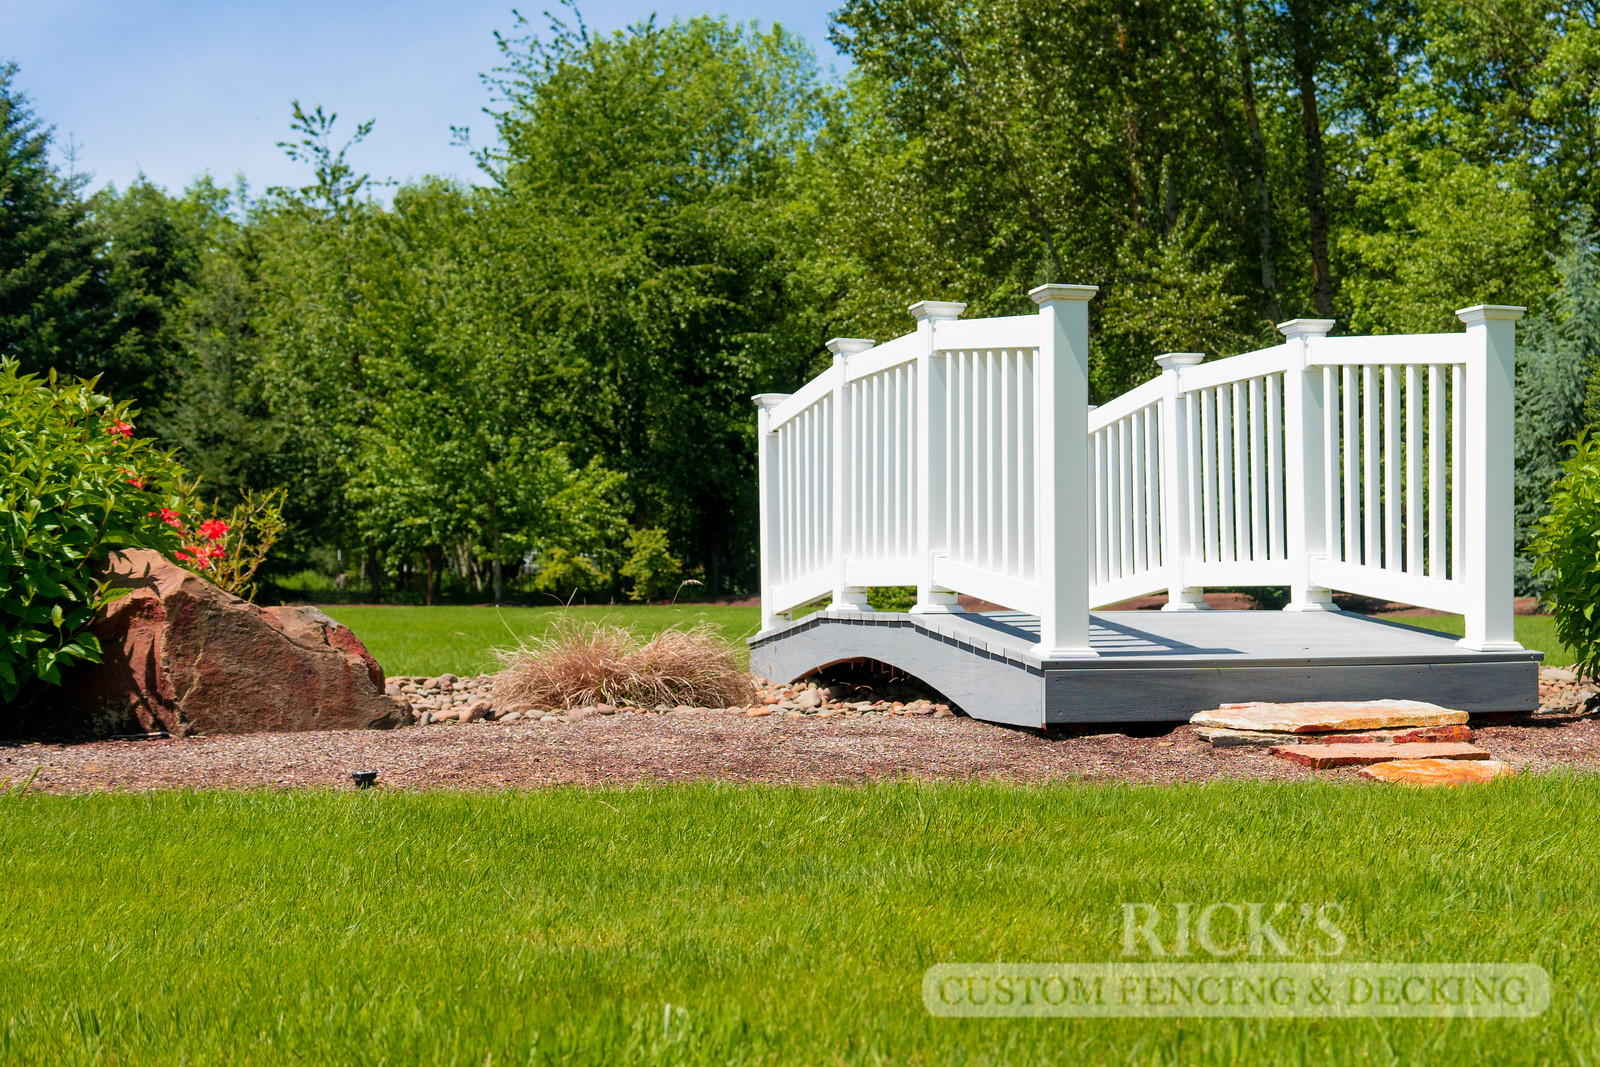 1245 - LifeStyle HDPE Composite Decking